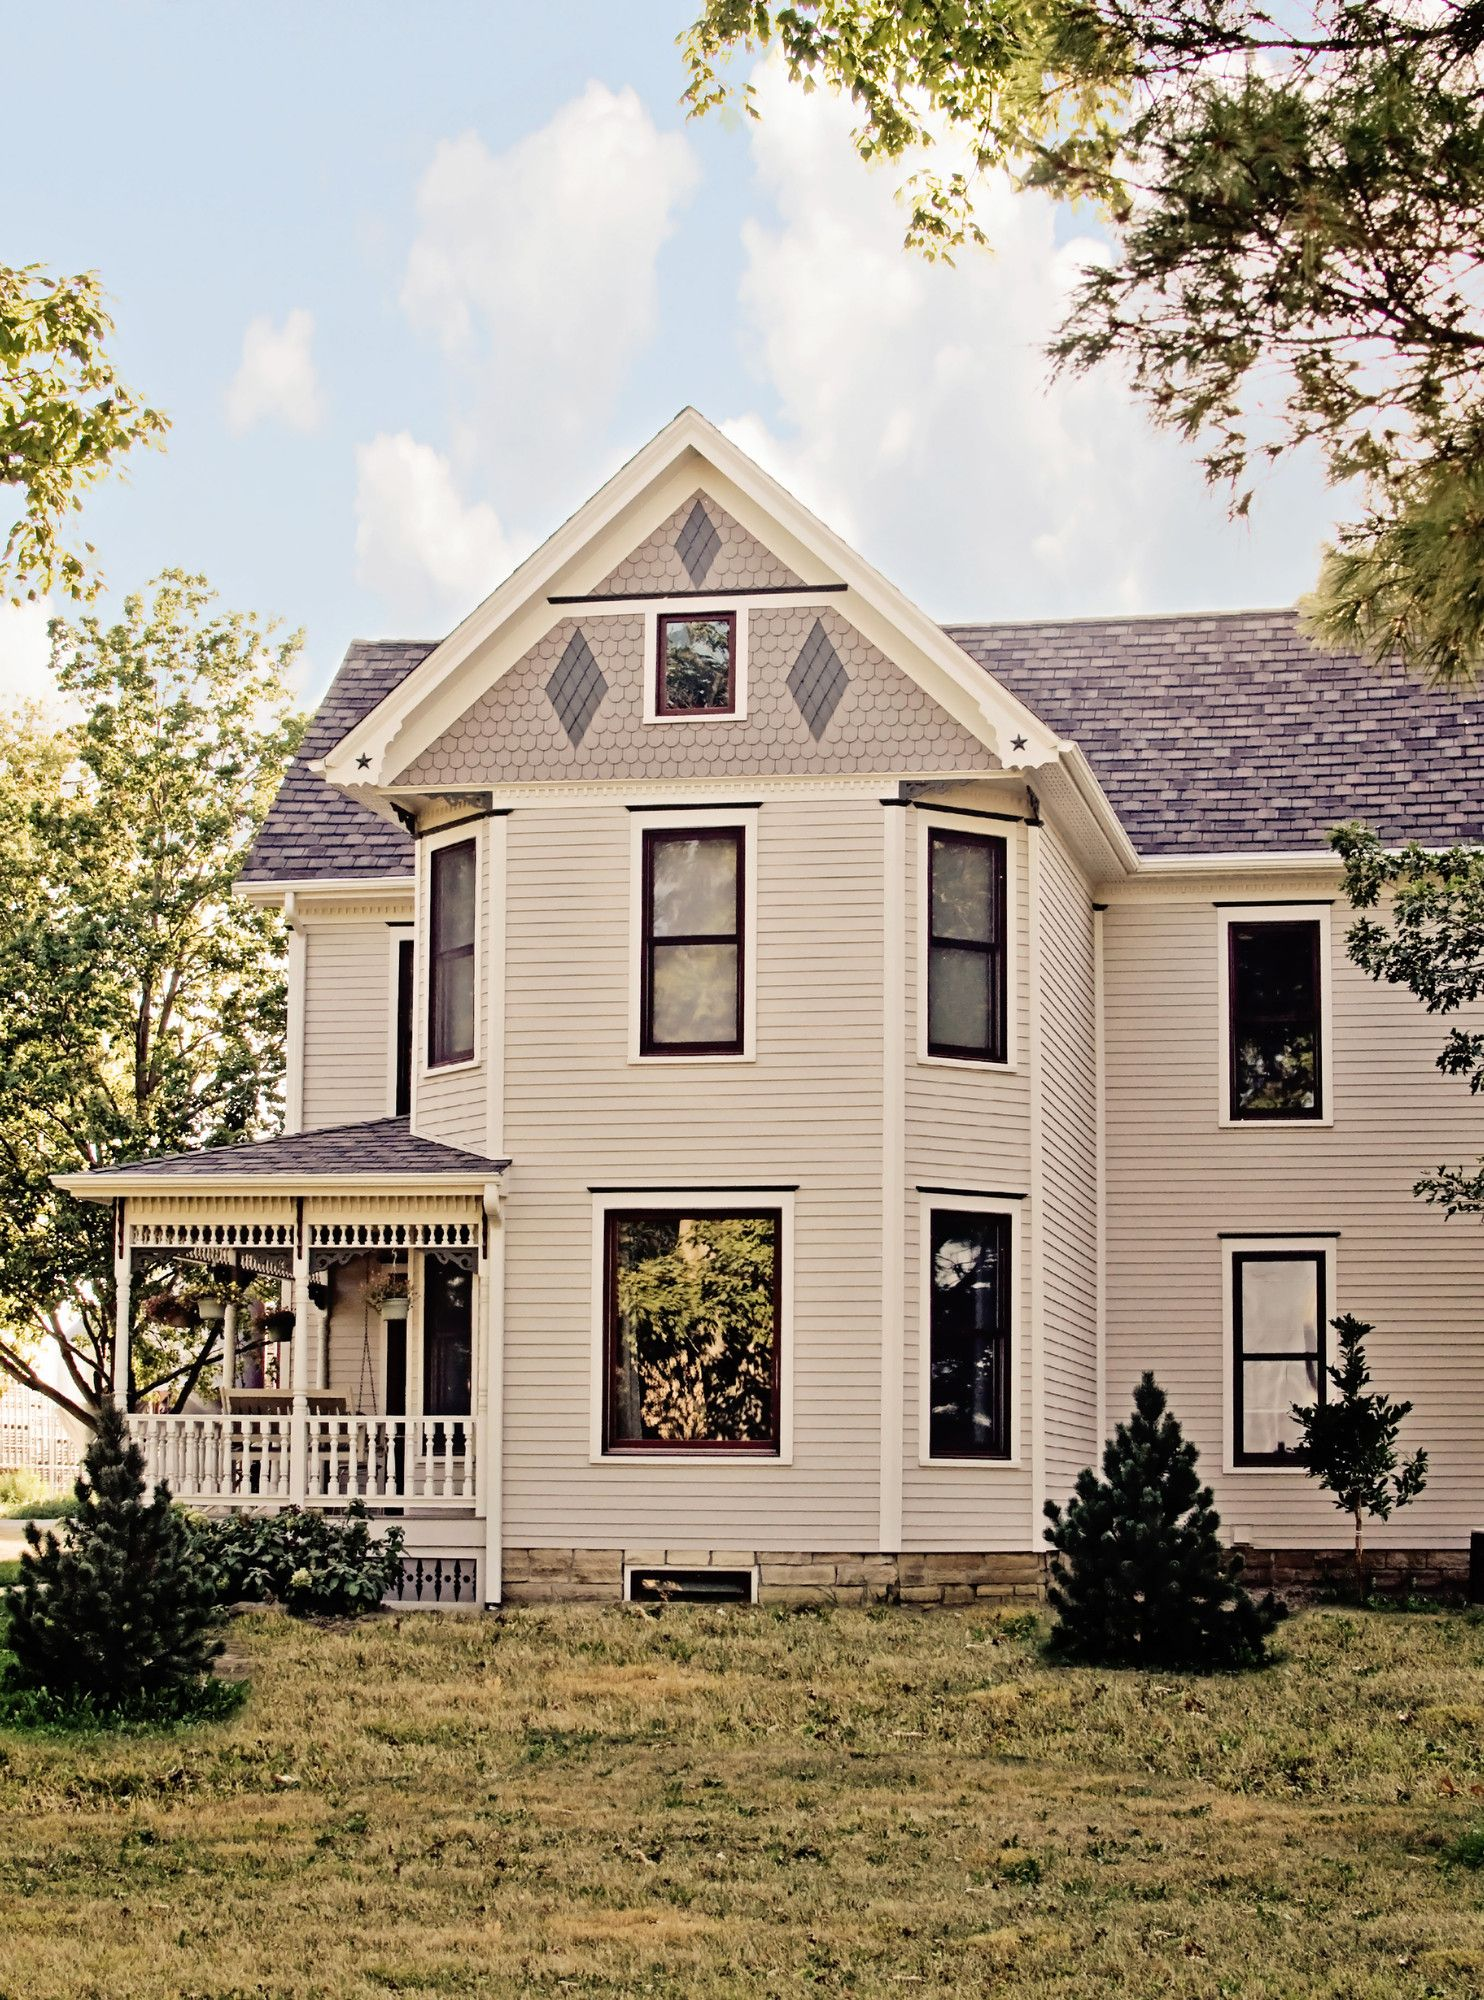 At Scottish Home Improvements We Love Working With James Hardie Home Exterior Finishing Products J Exterior House Siding House Exterior Farmhouse Style House